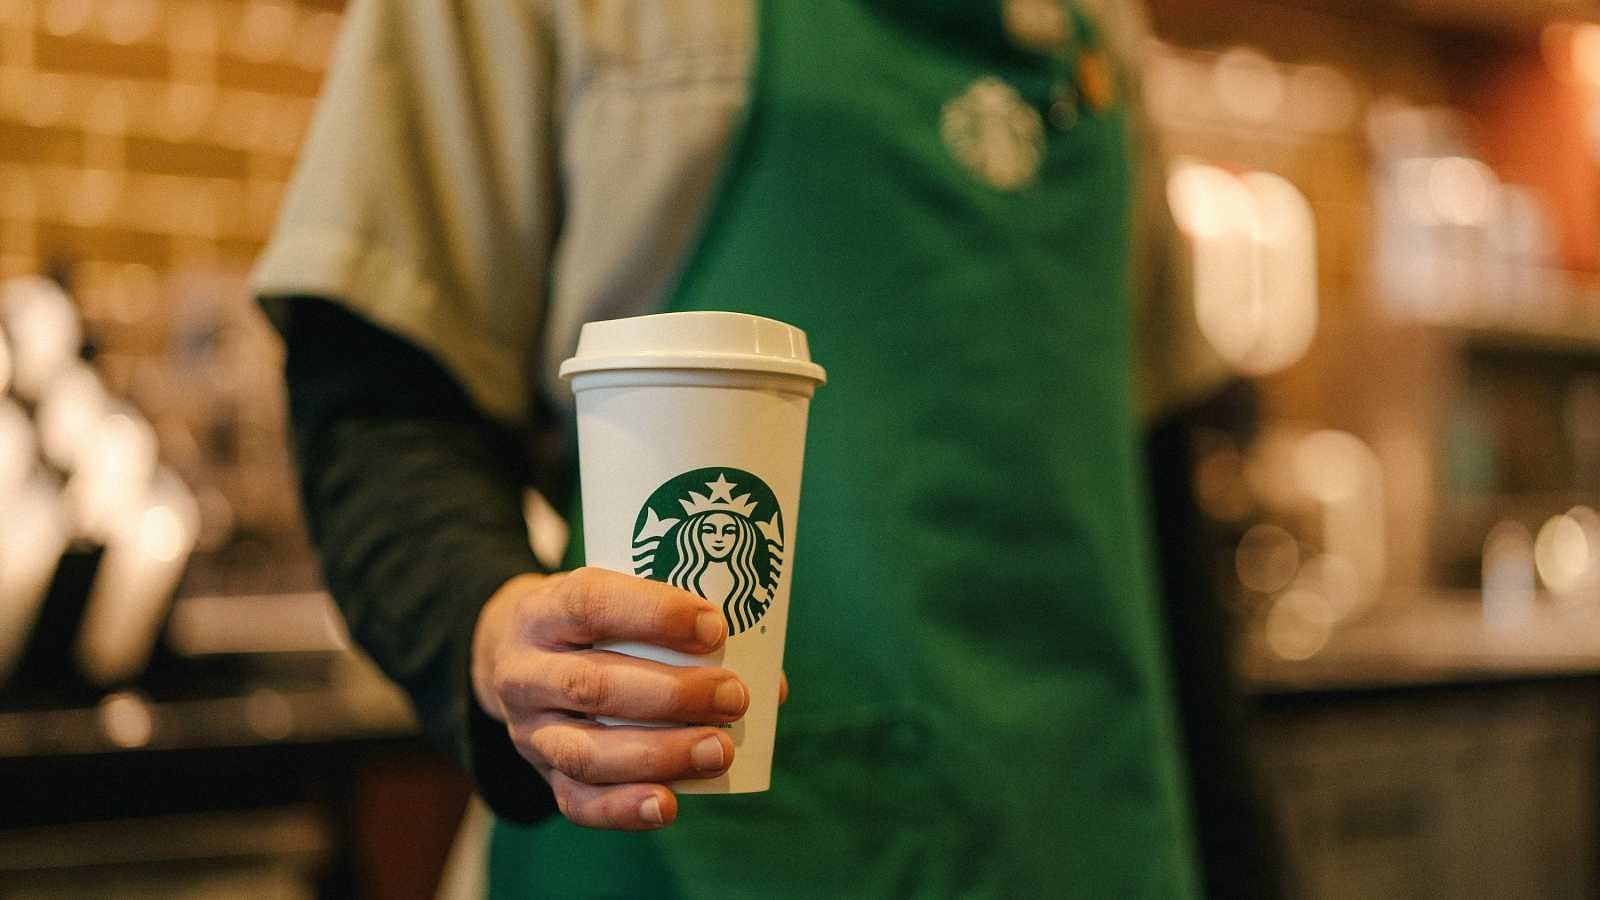 Starbucks Offers Free Coffee to Health Care Workers, First Responders As Coronavirus Cases Rise